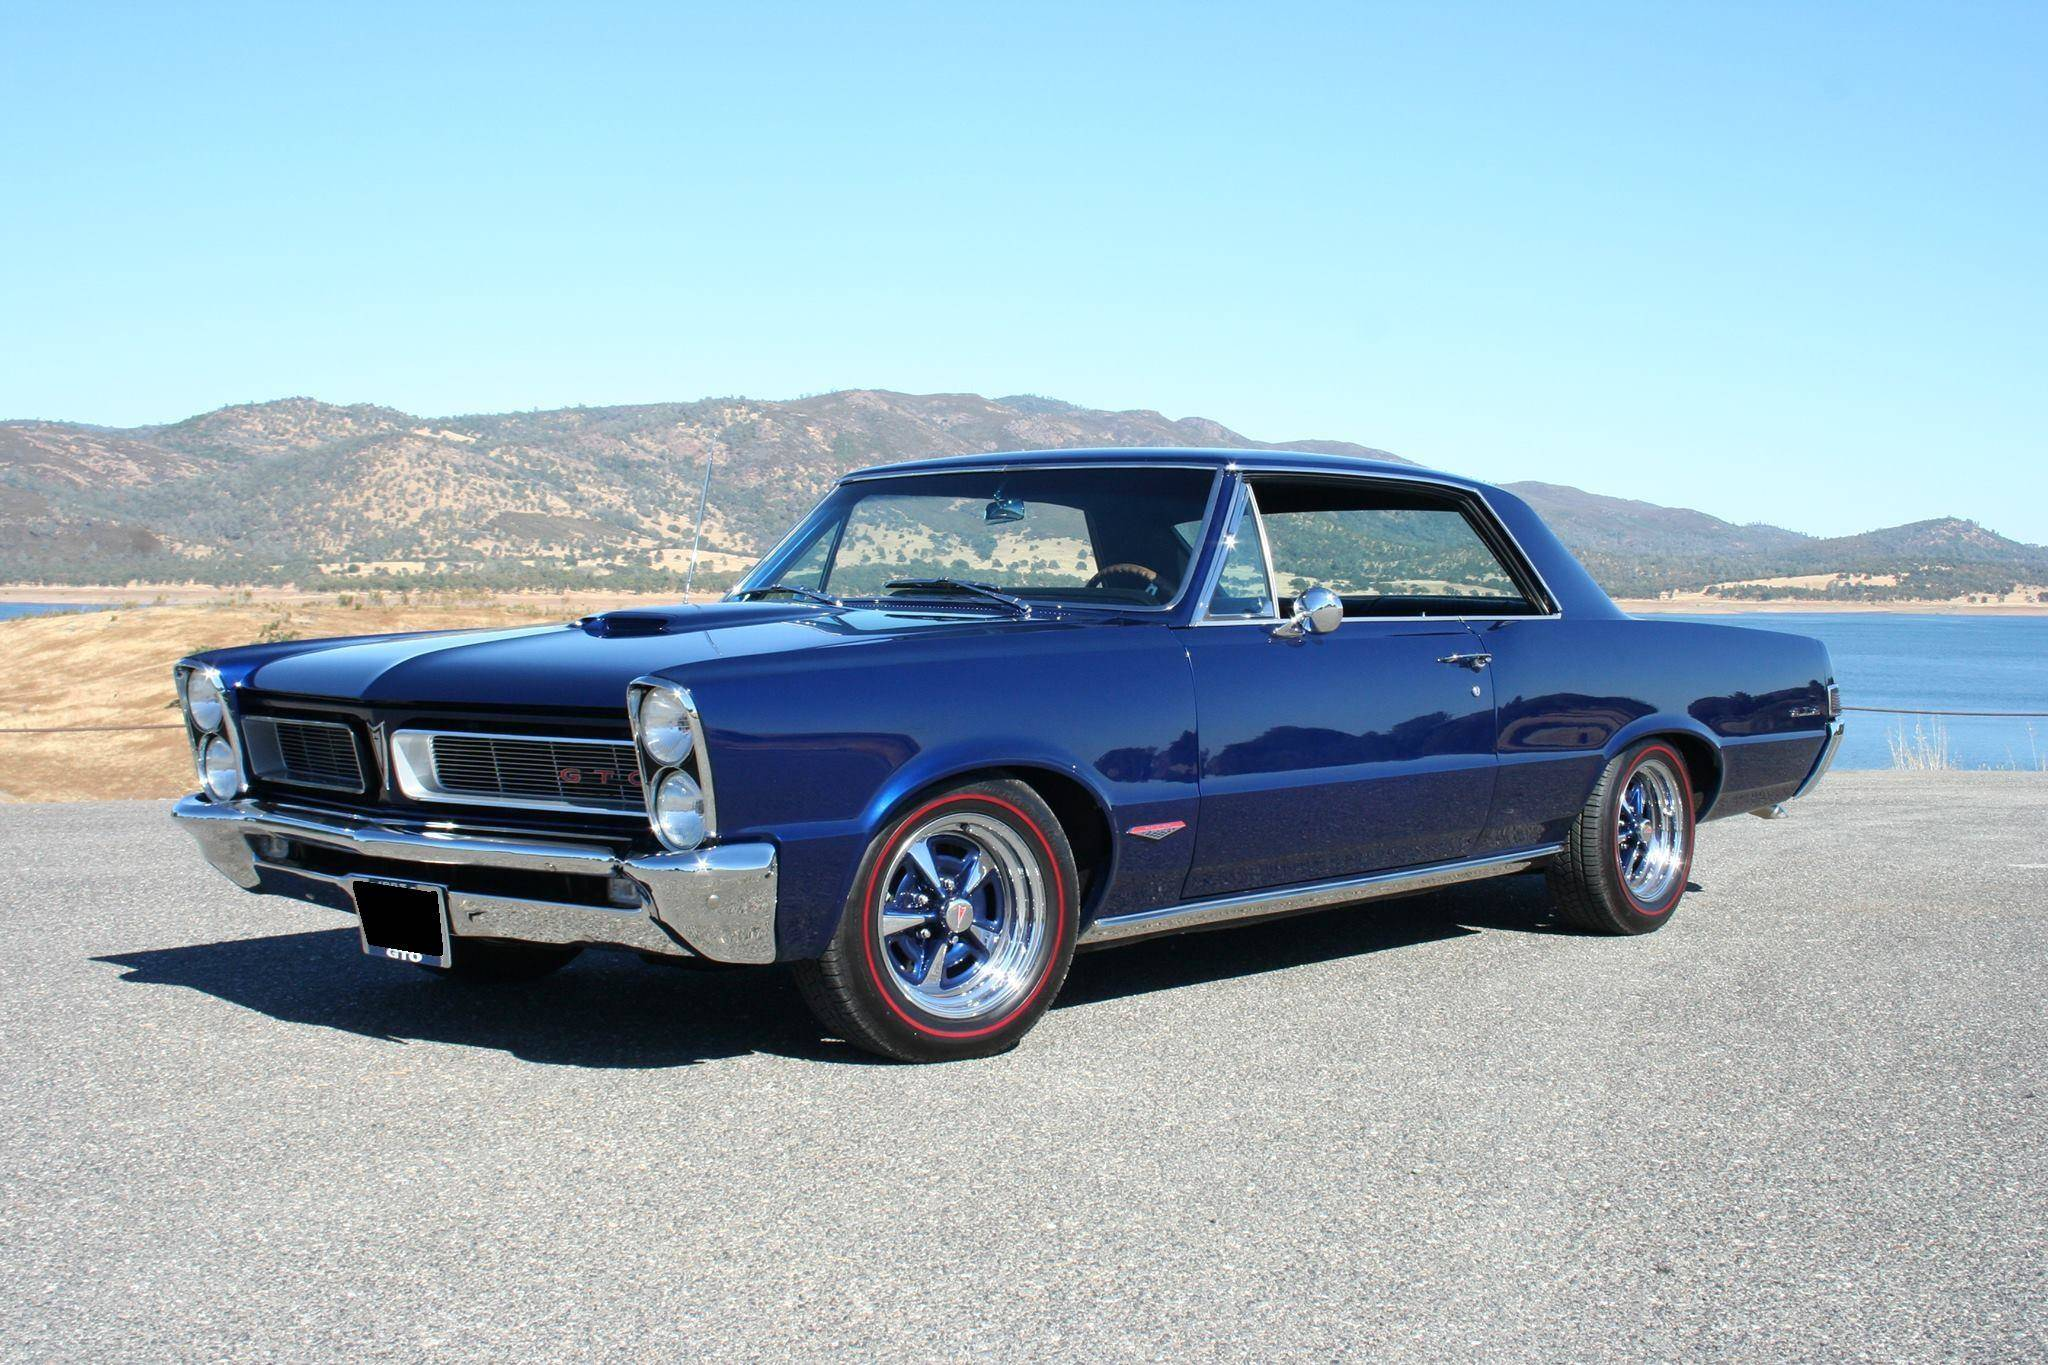 Clean and simple lines on this perfect 1965 Pontiac GTO